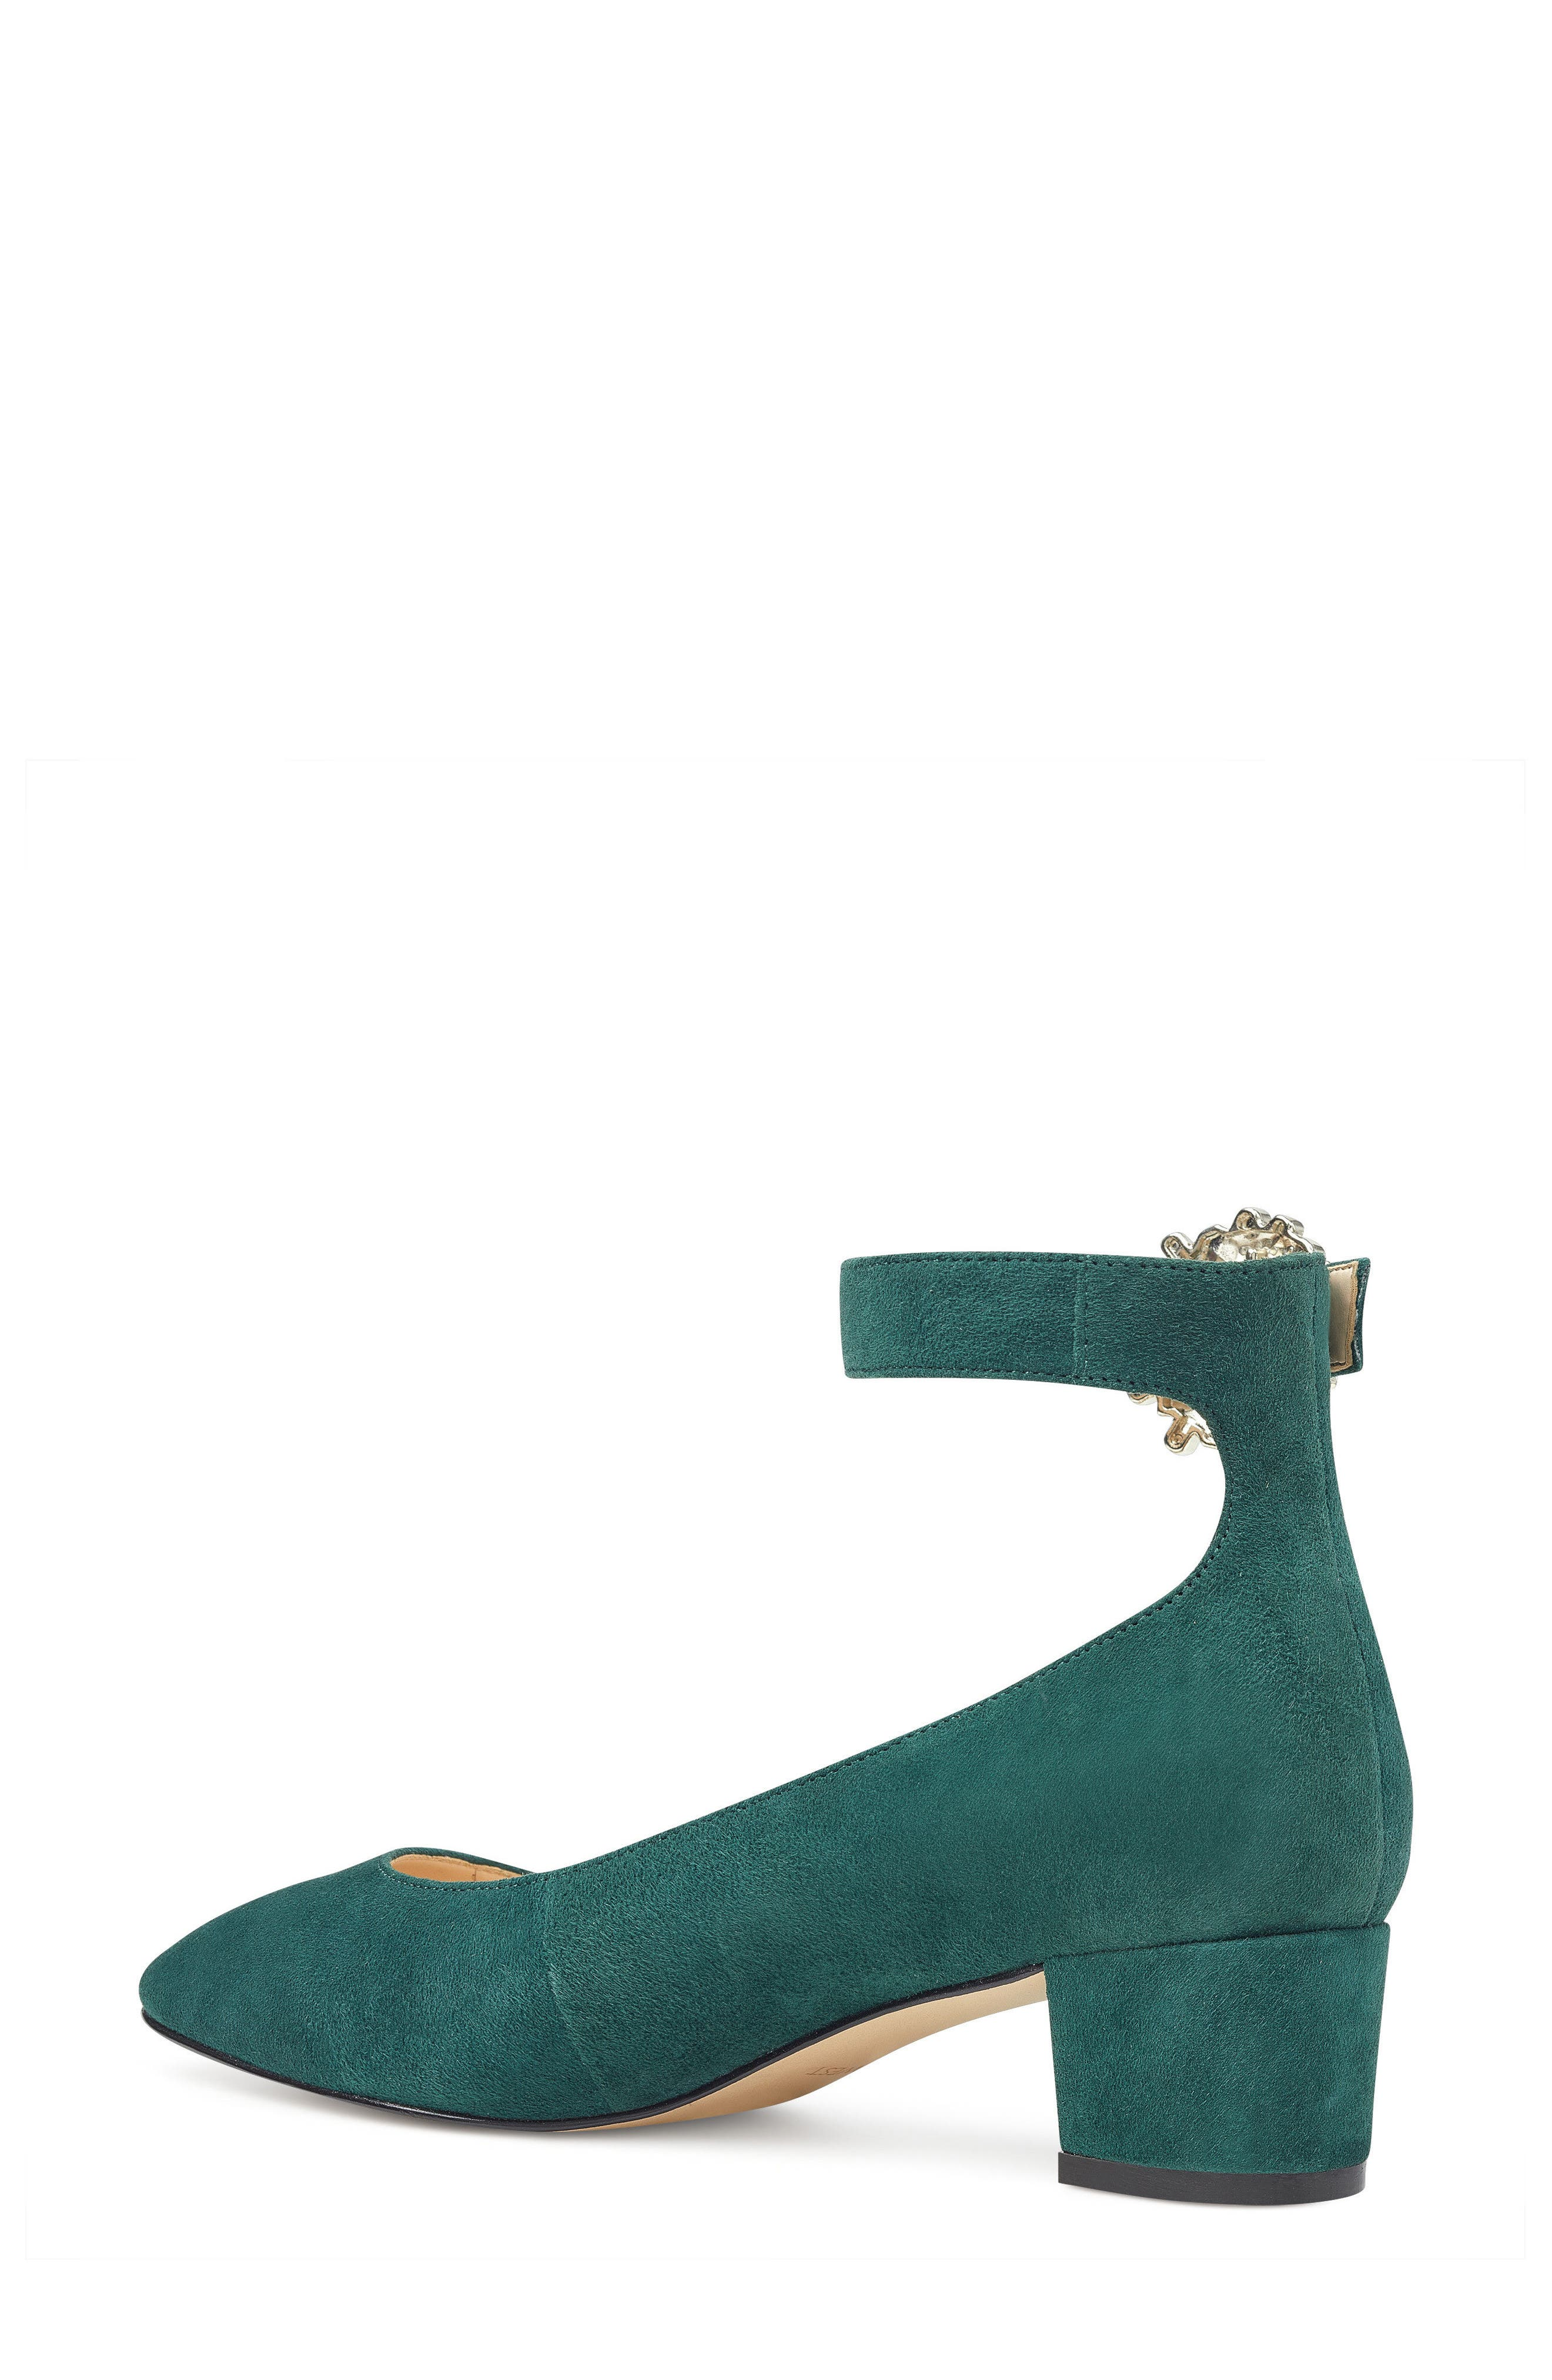 Bartly Ankle Strap Pump,                             Alternate thumbnail 6, color,